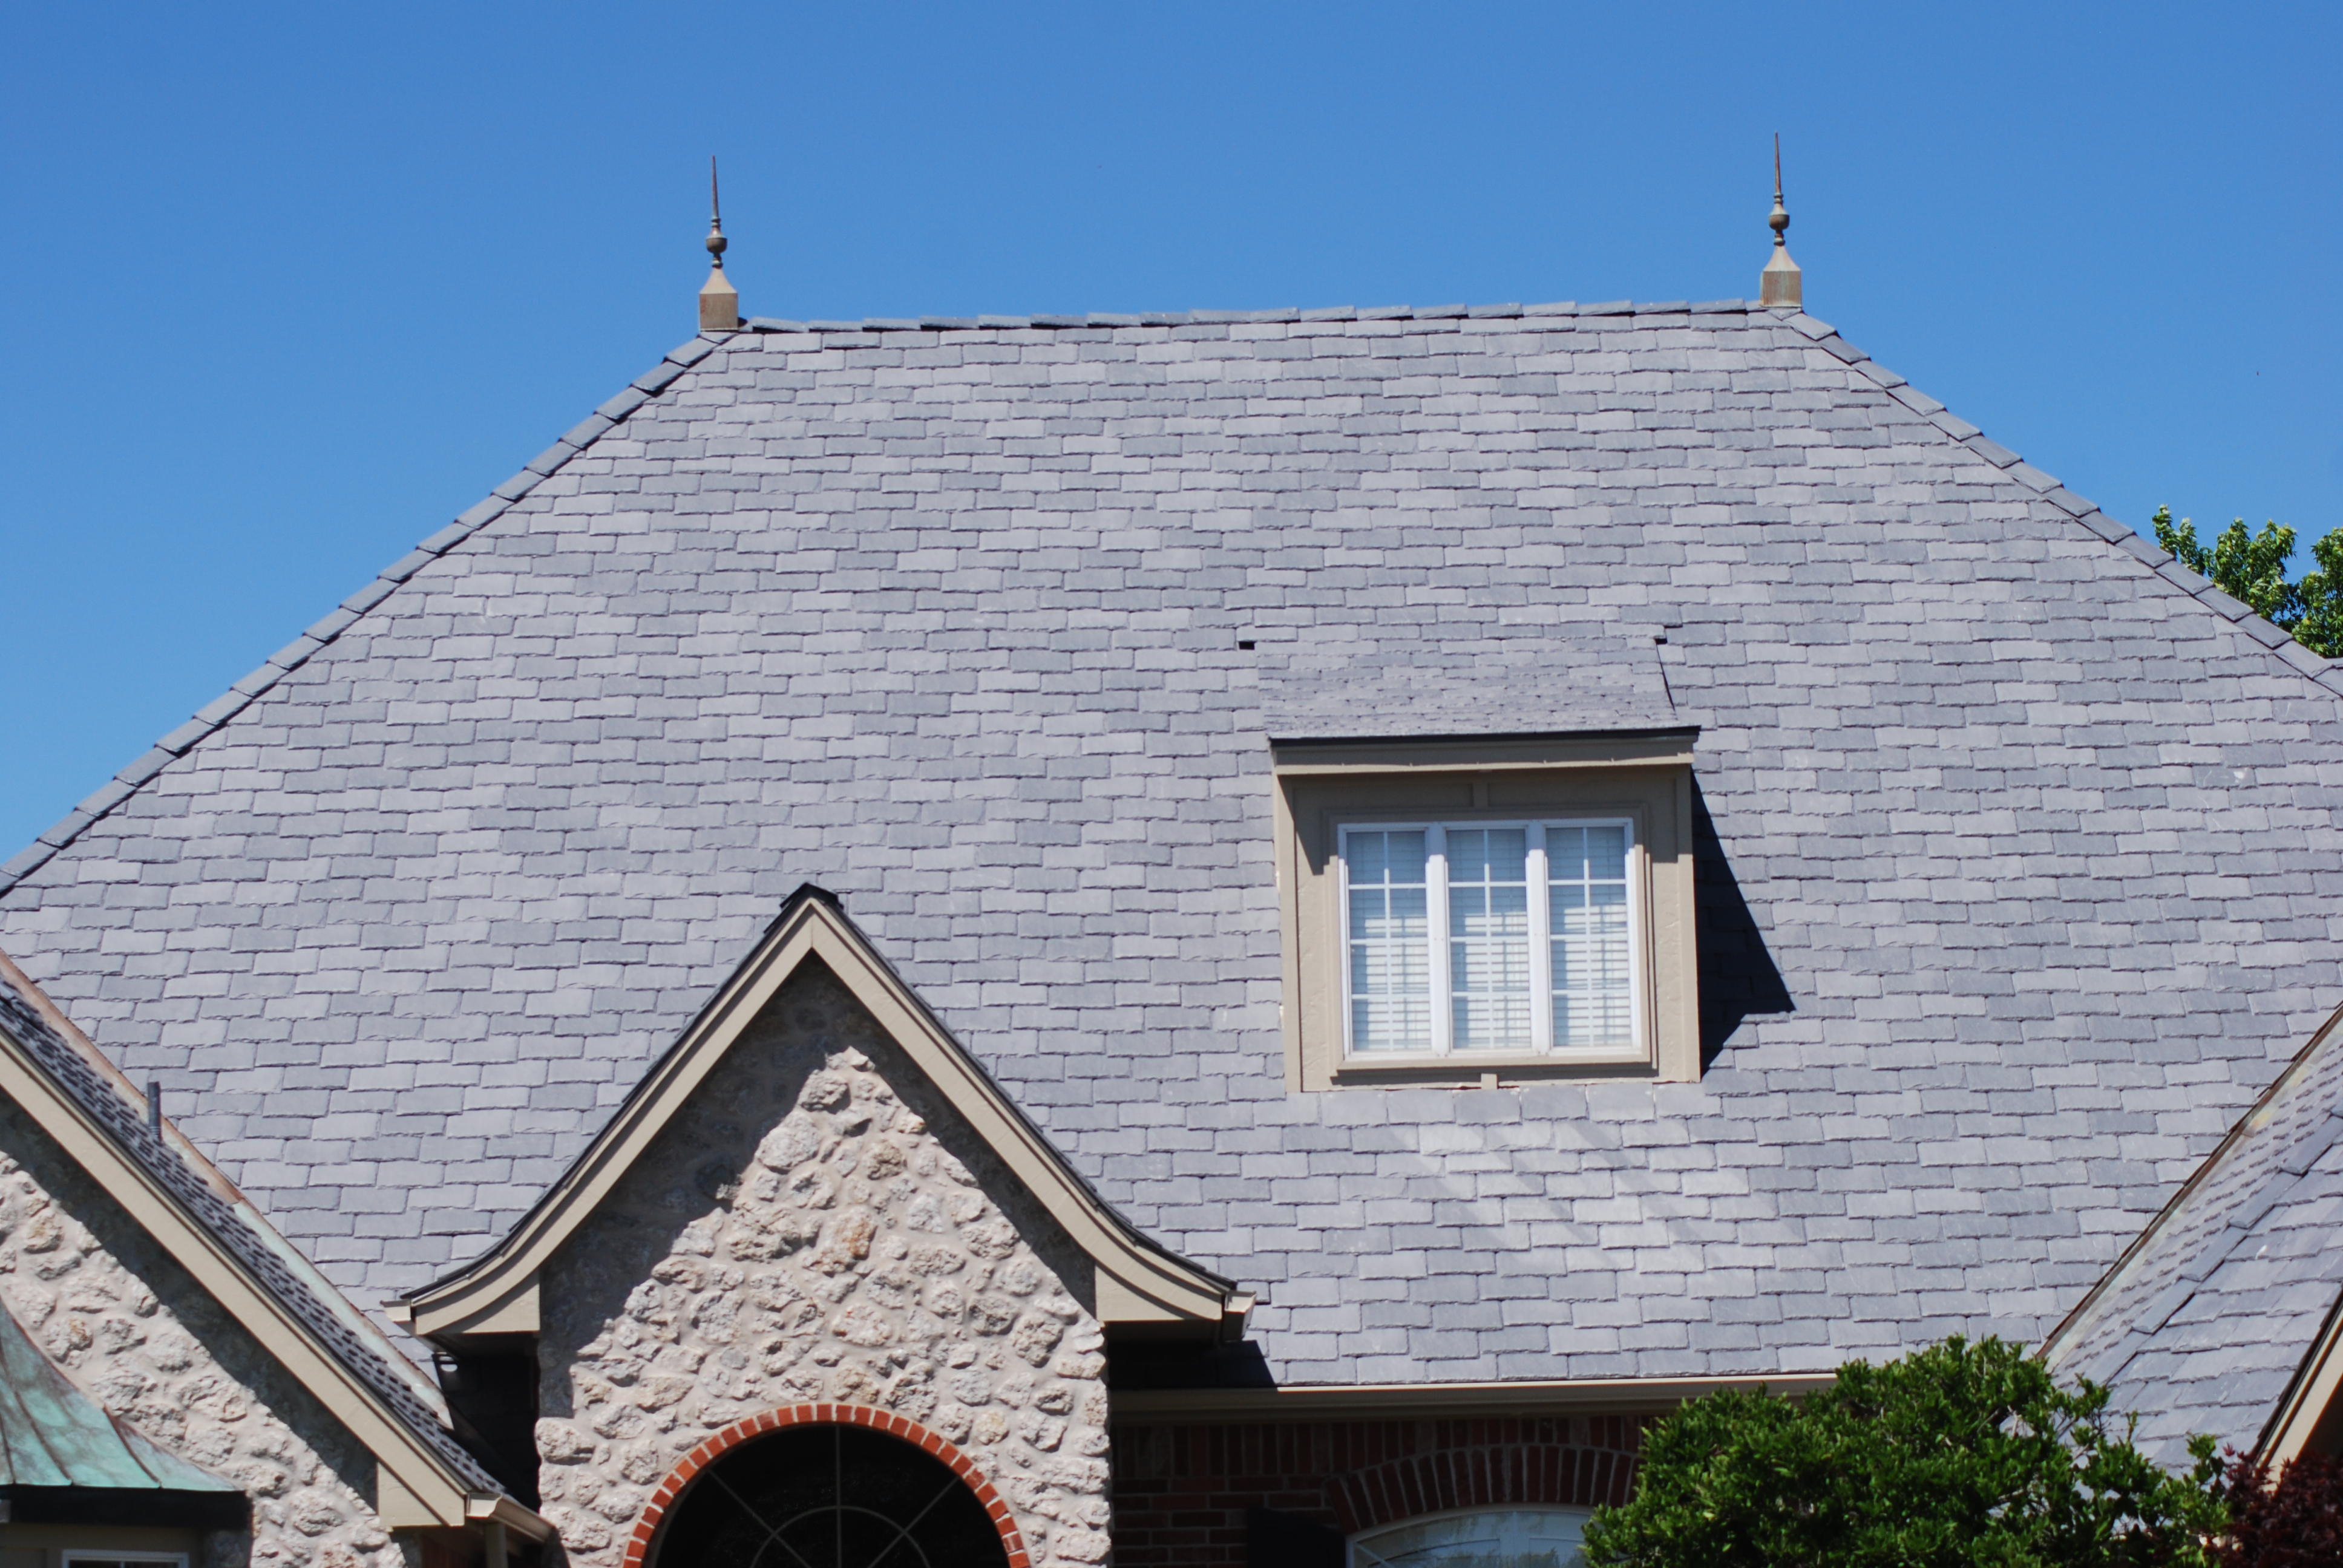 Deciding on a slate roof davinci roofscapes for Davinci roofscapes cost